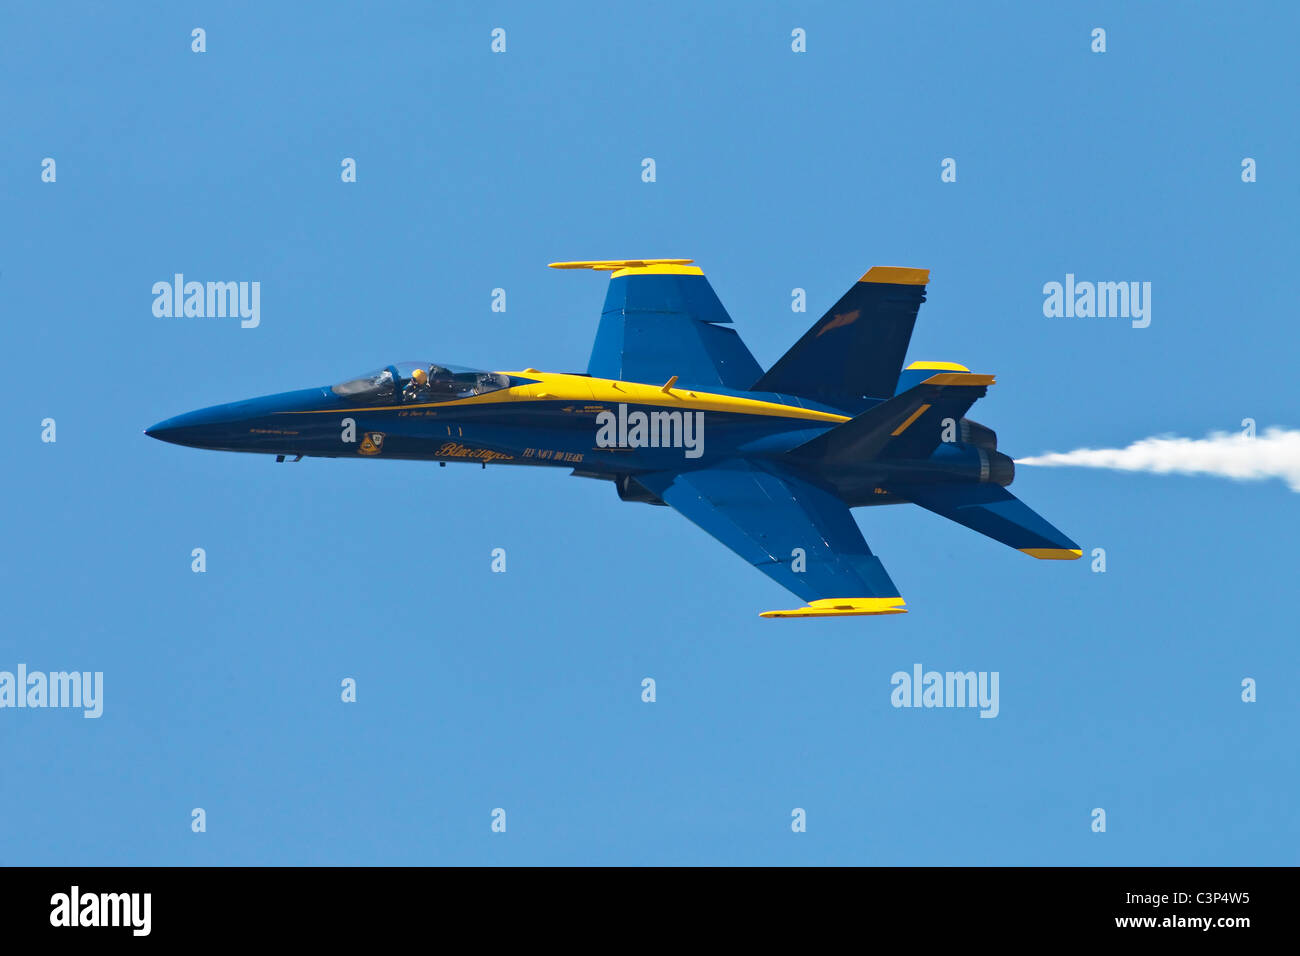 A USN F18 of the US Navy's aerobatic team the Blue Angels - Stock Image